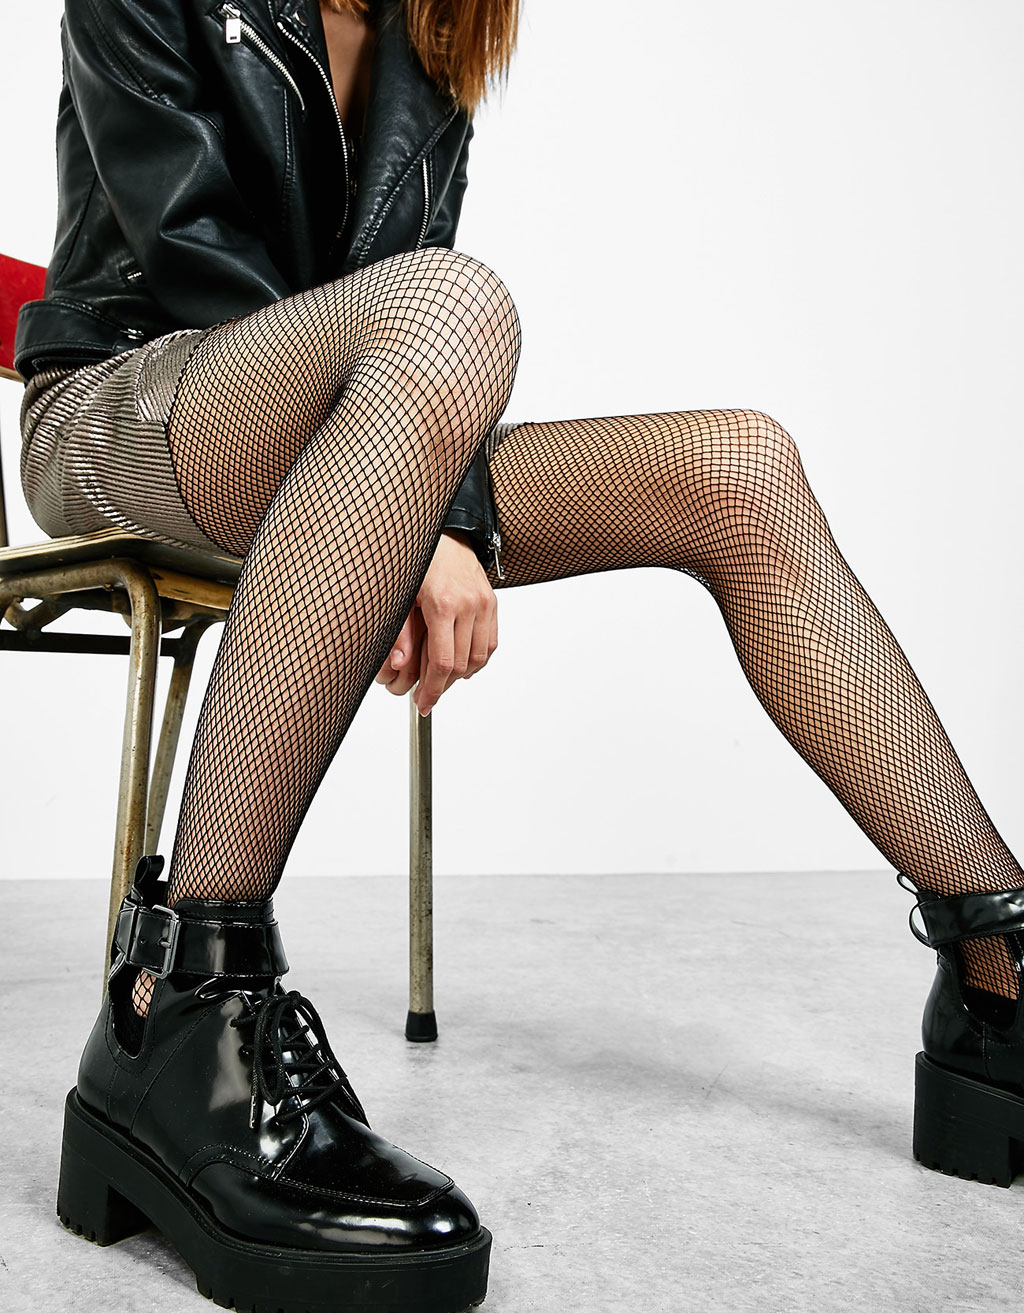 Fishnet winter tights